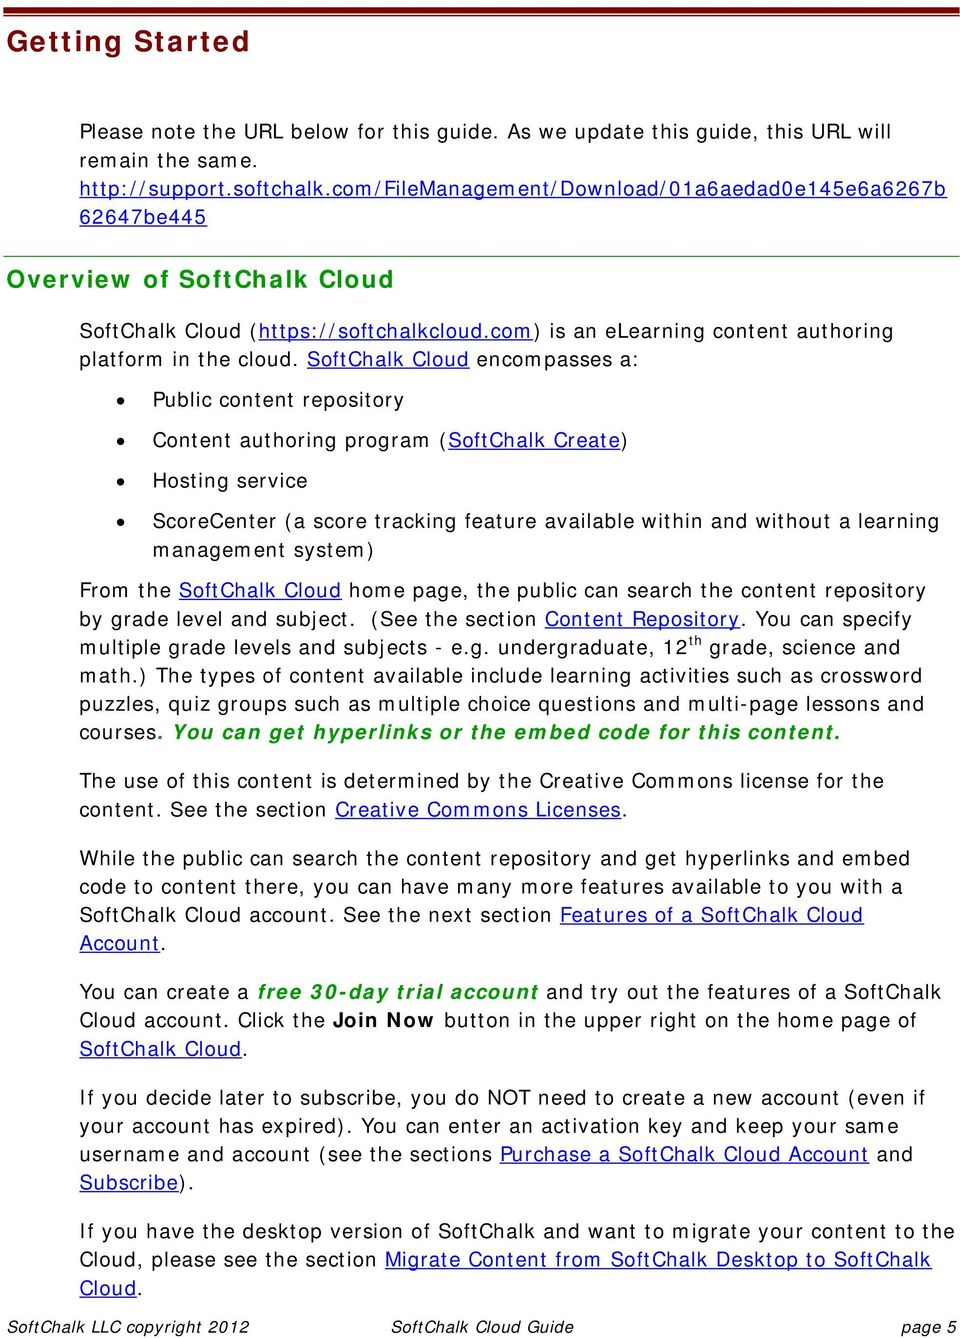 SoftChalk Cloud encompasses a: Public content repository Content authoring program (SoftChalk Create) Hosting service ScoreCenter (a score tracking feature available within and without a learning